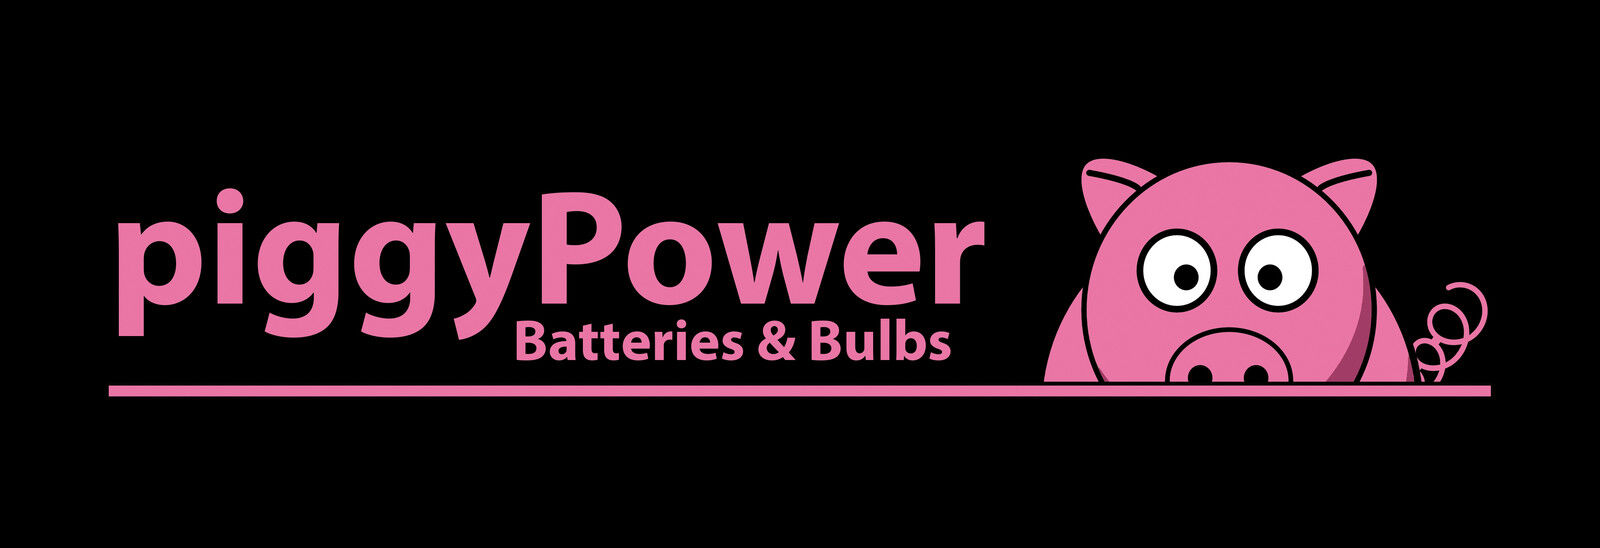 Piggy_powerbatteries1